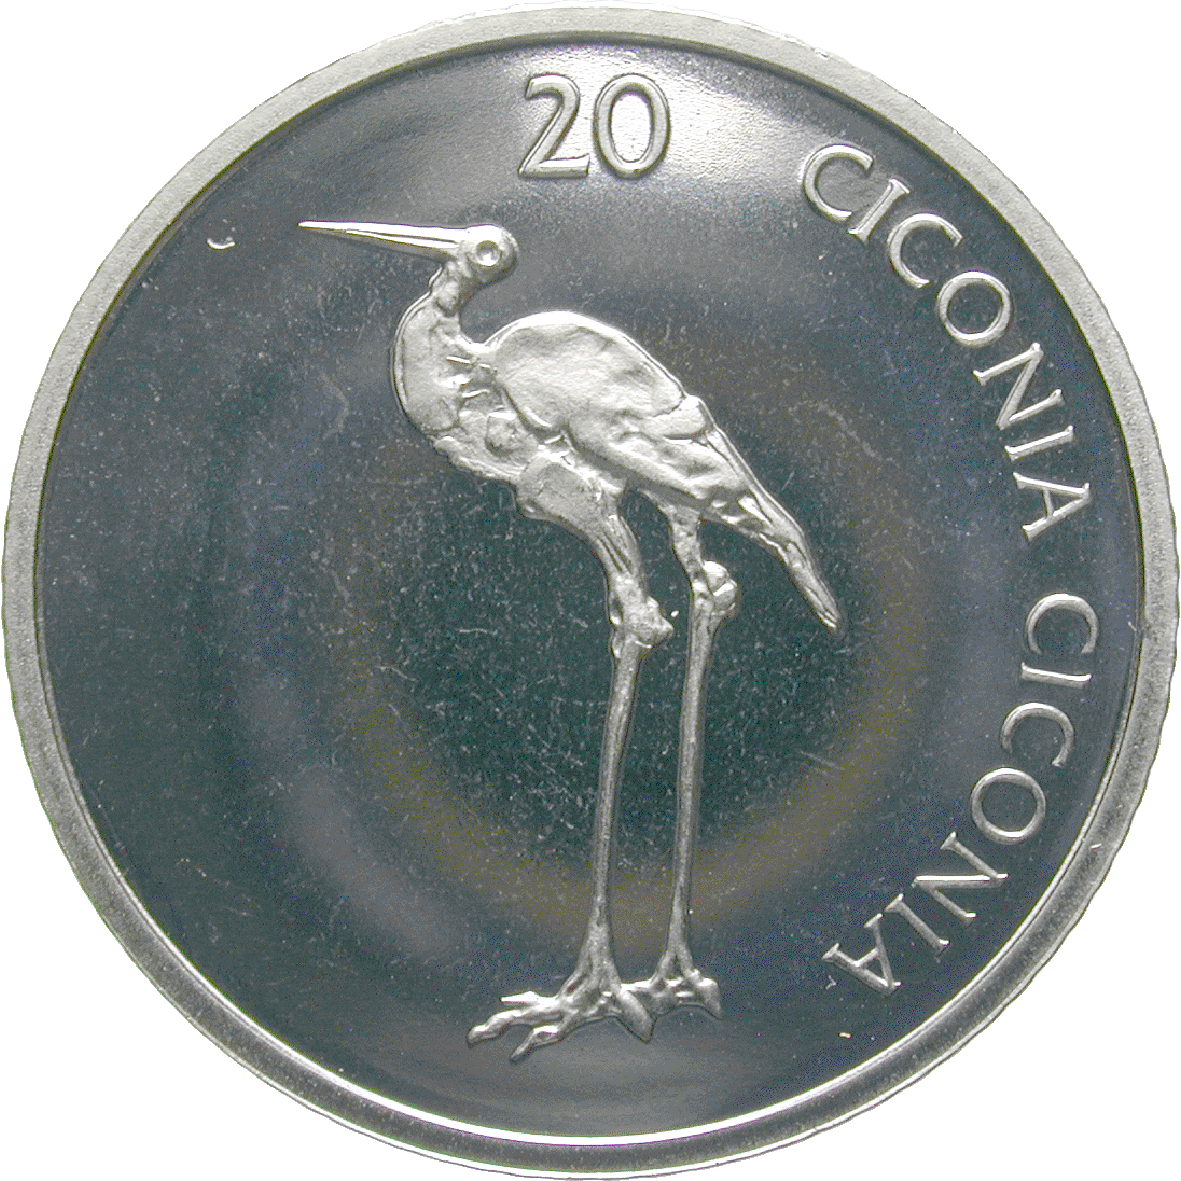 Republic of Slovenia, 20 Tolar 2006 (reverse)